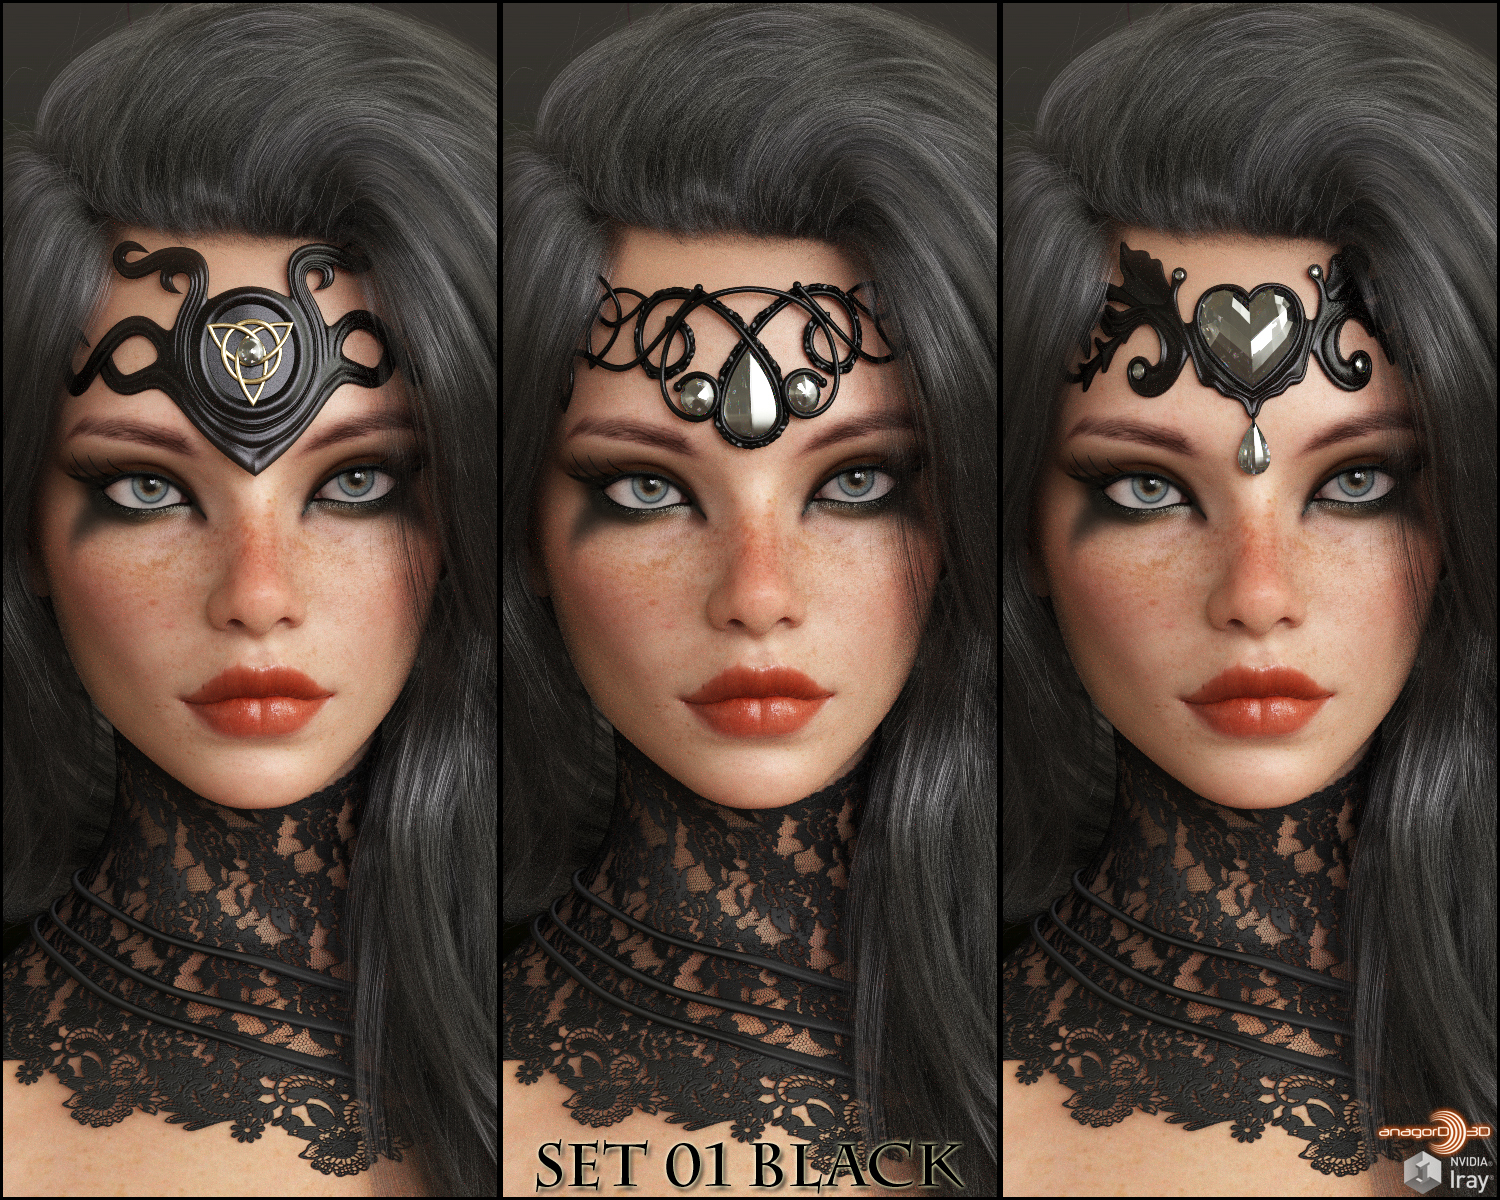 VERSUS - Gothic Accents for Genesis 8 Females by Anagord